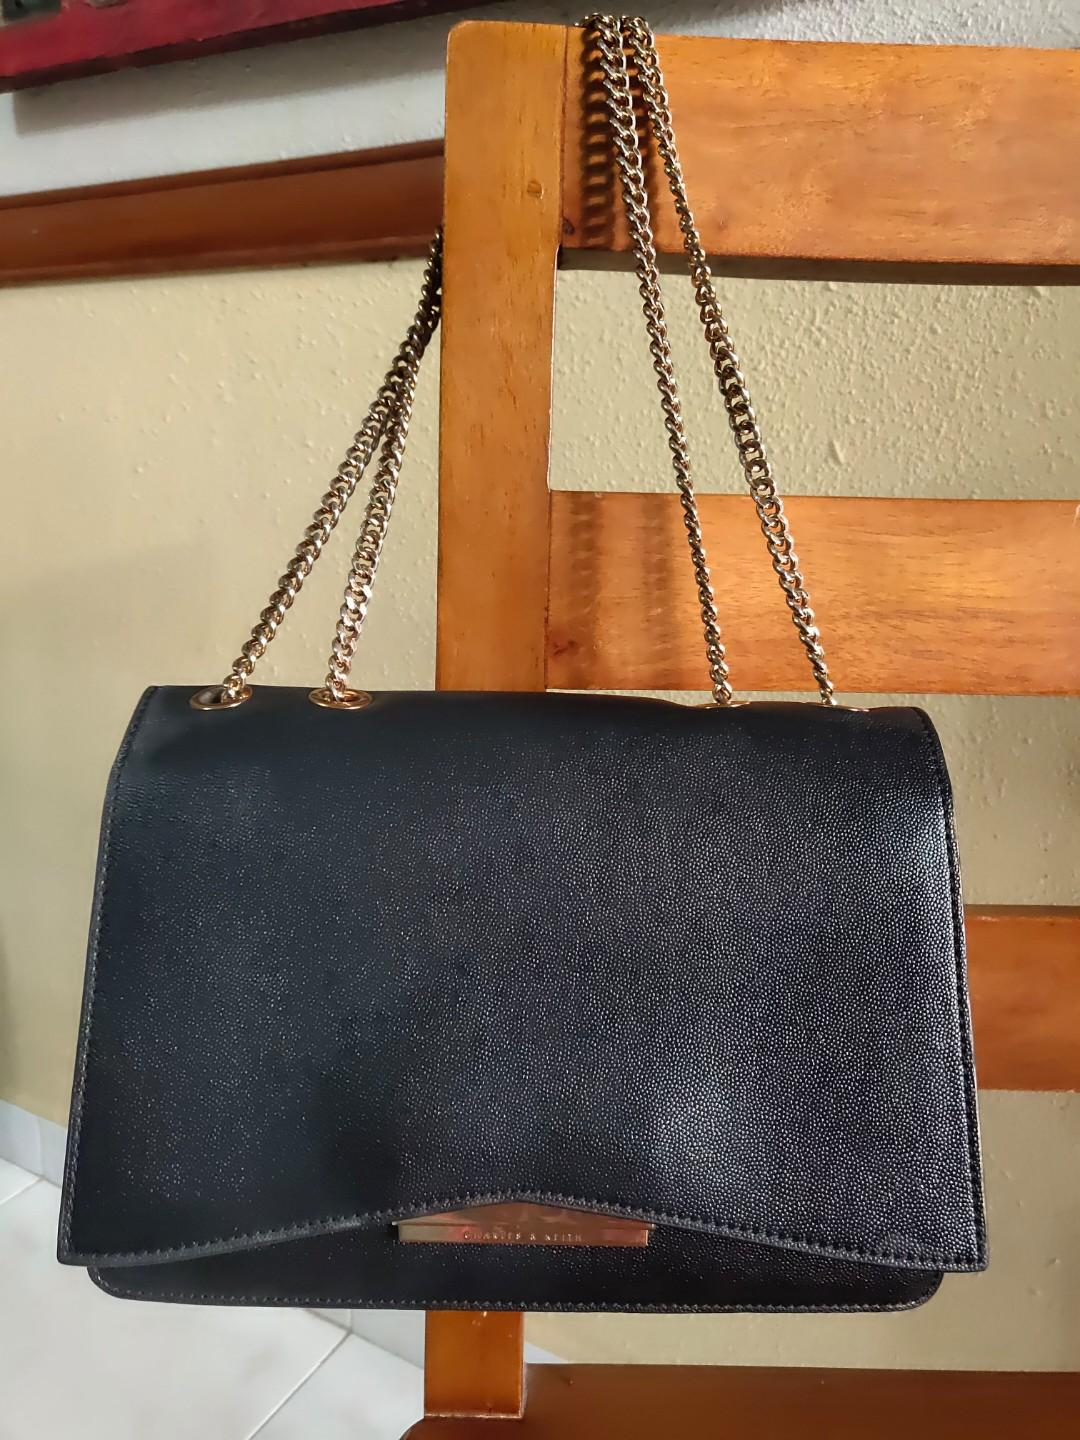 Free Giveaway (Auth C & K Chain bag) for any 2 bags purchase from my listing. Kindly browse my listing for mote info of the individual bags.